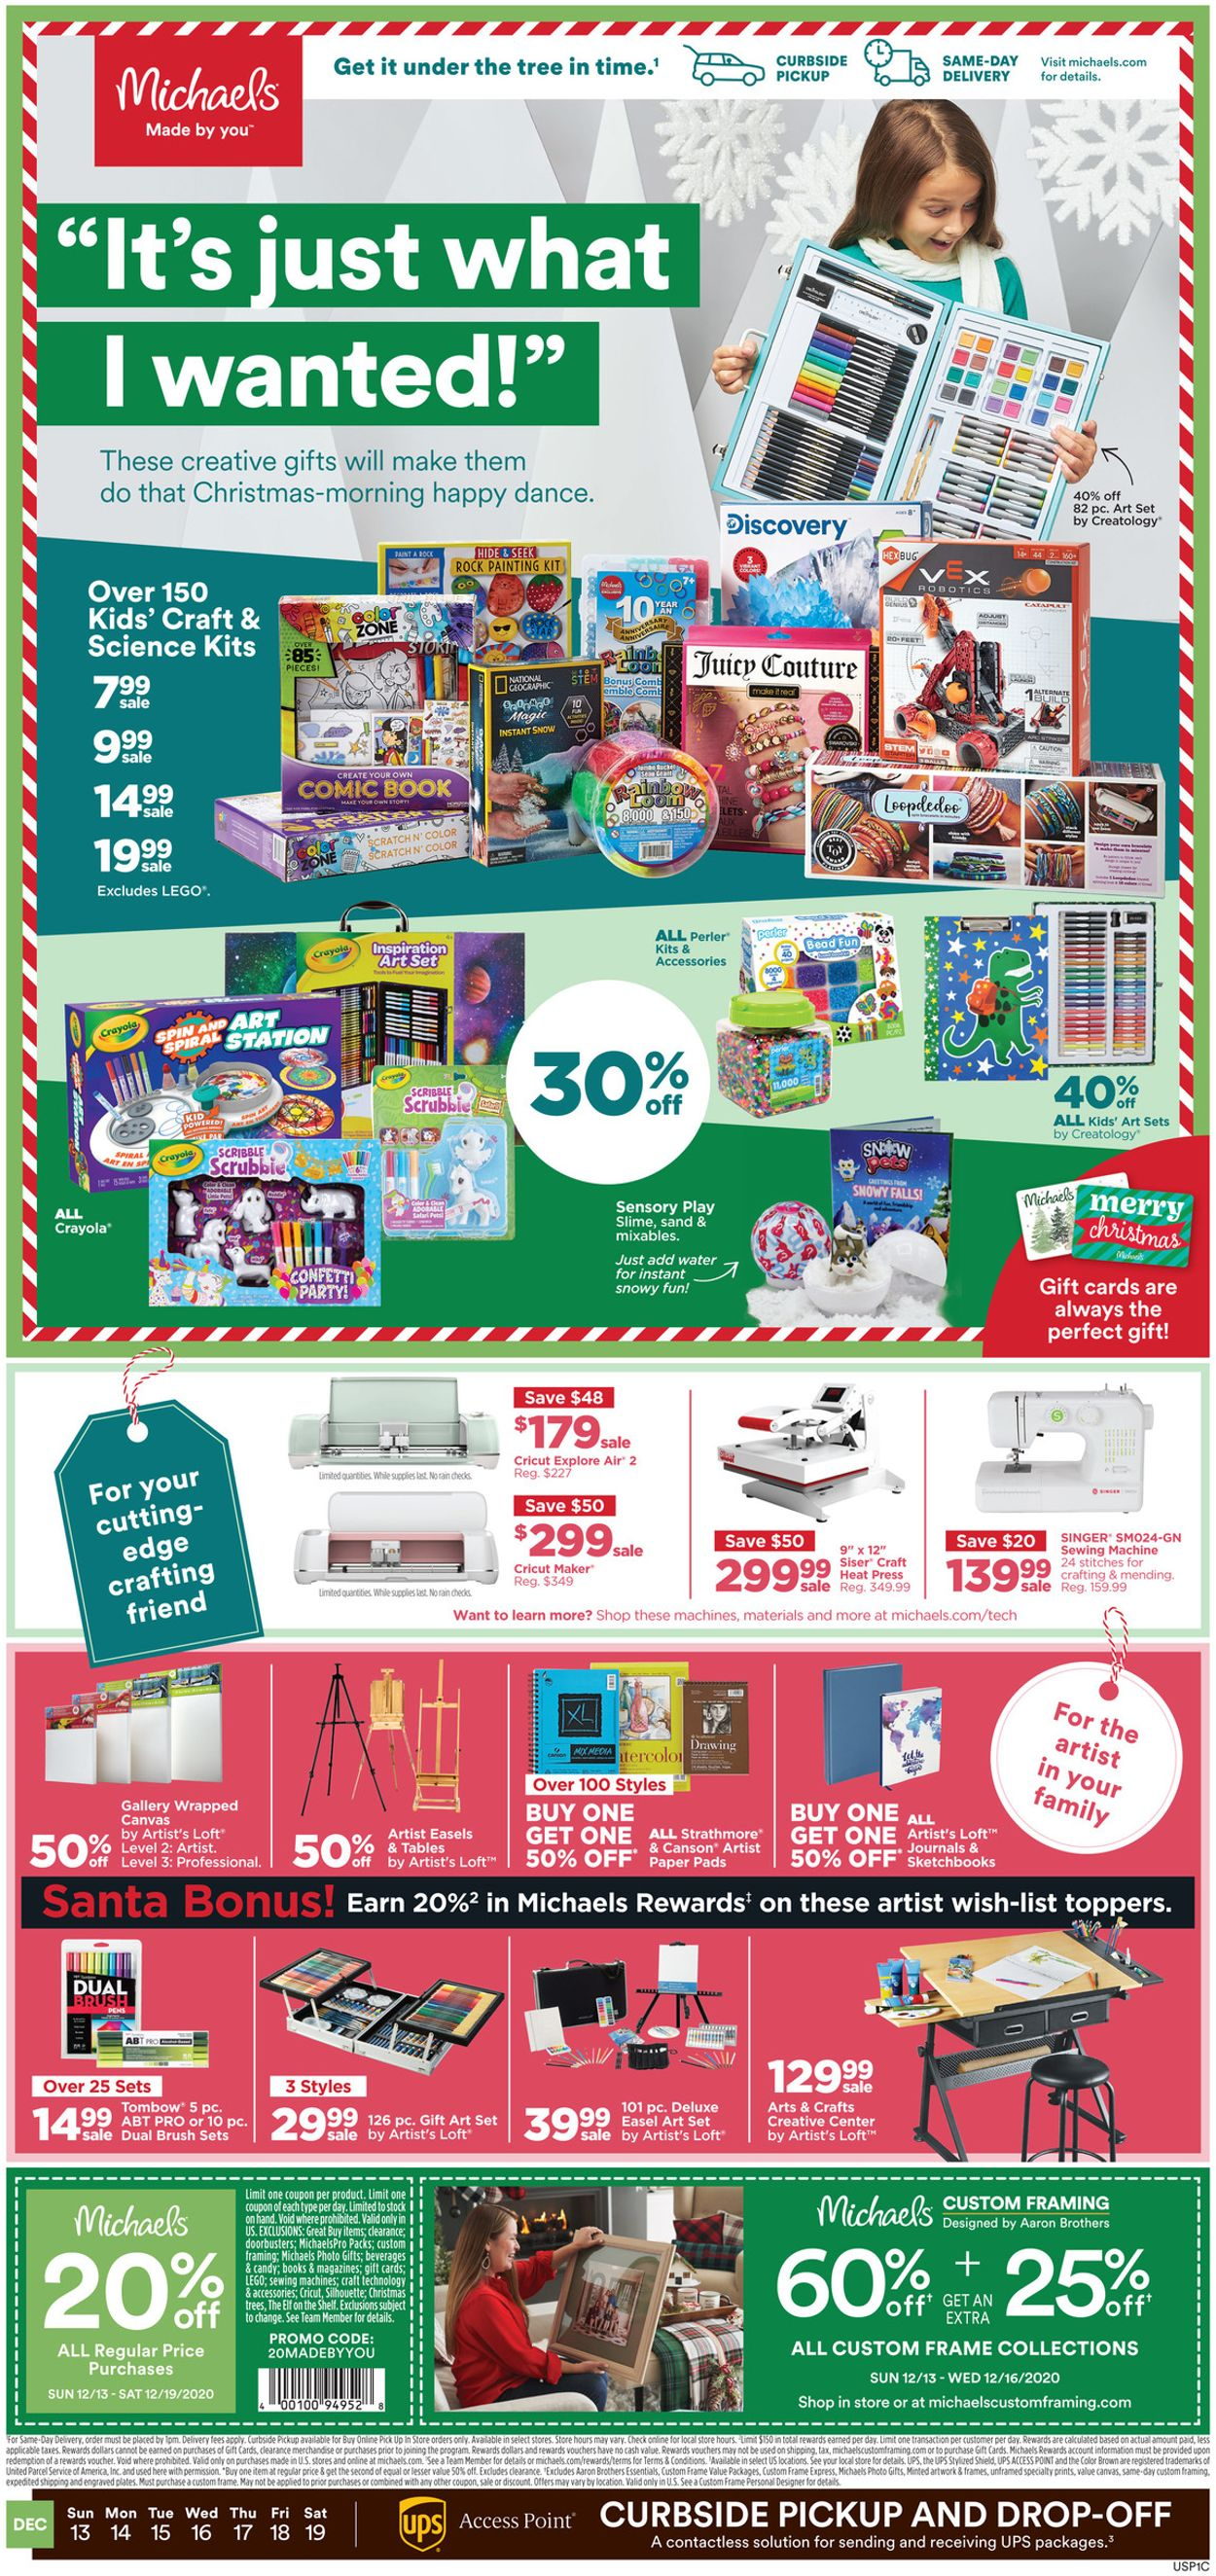 Michaels - Holiday 2020 Flyer - 12/13-12/19/2020